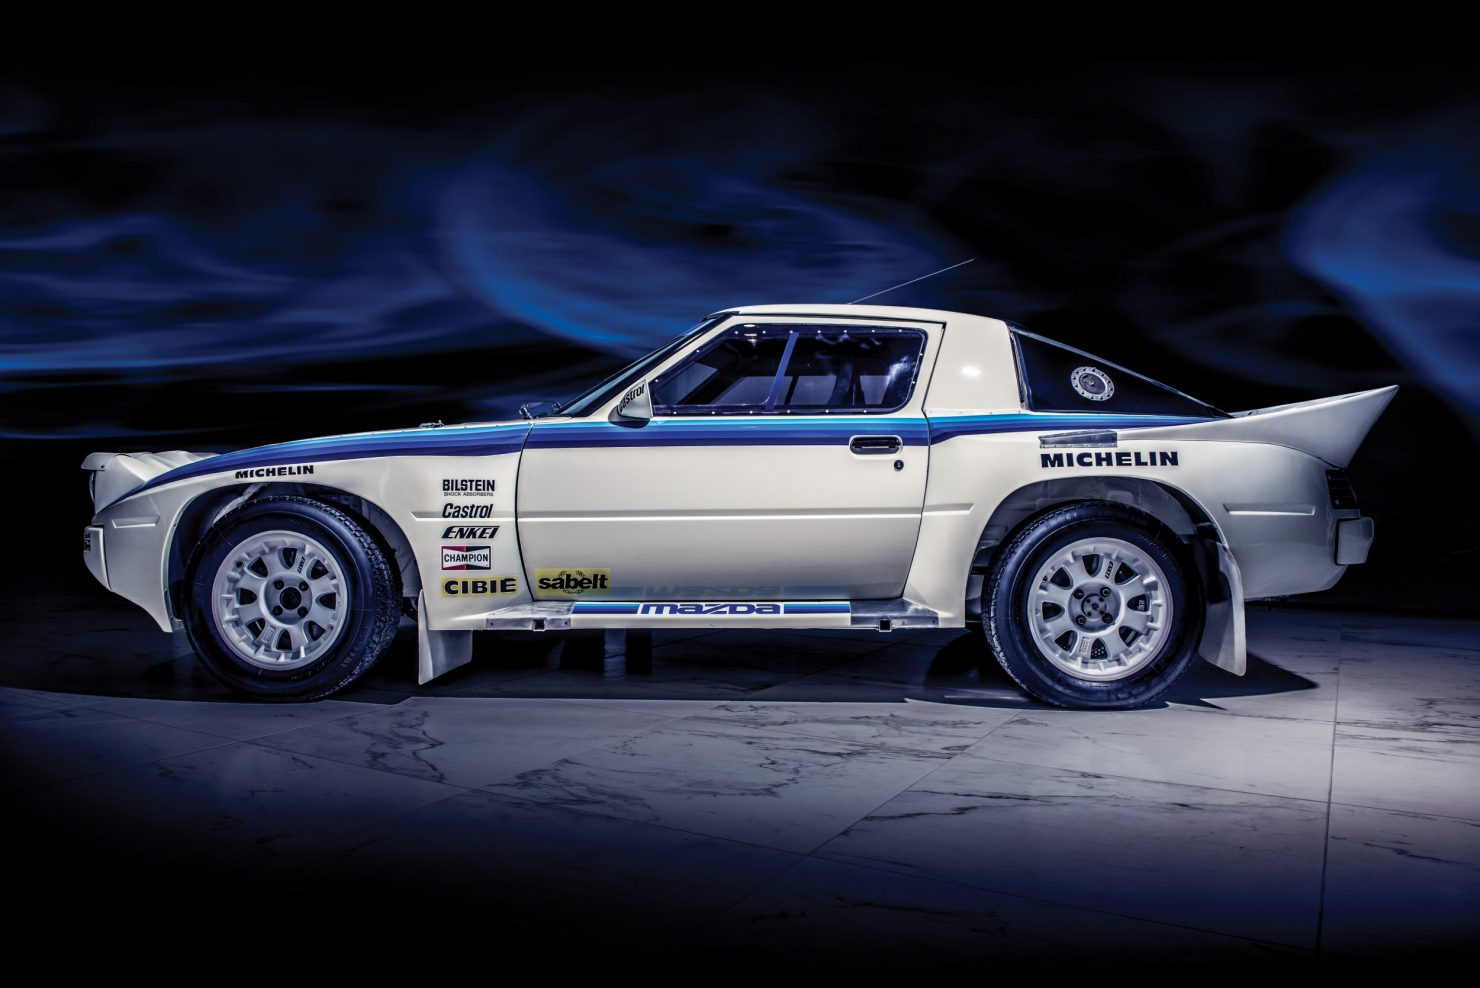 mazda rx7 evo group b 5 1480x988 - 1985 Mazda RX-7 Evo Group B Works Racer